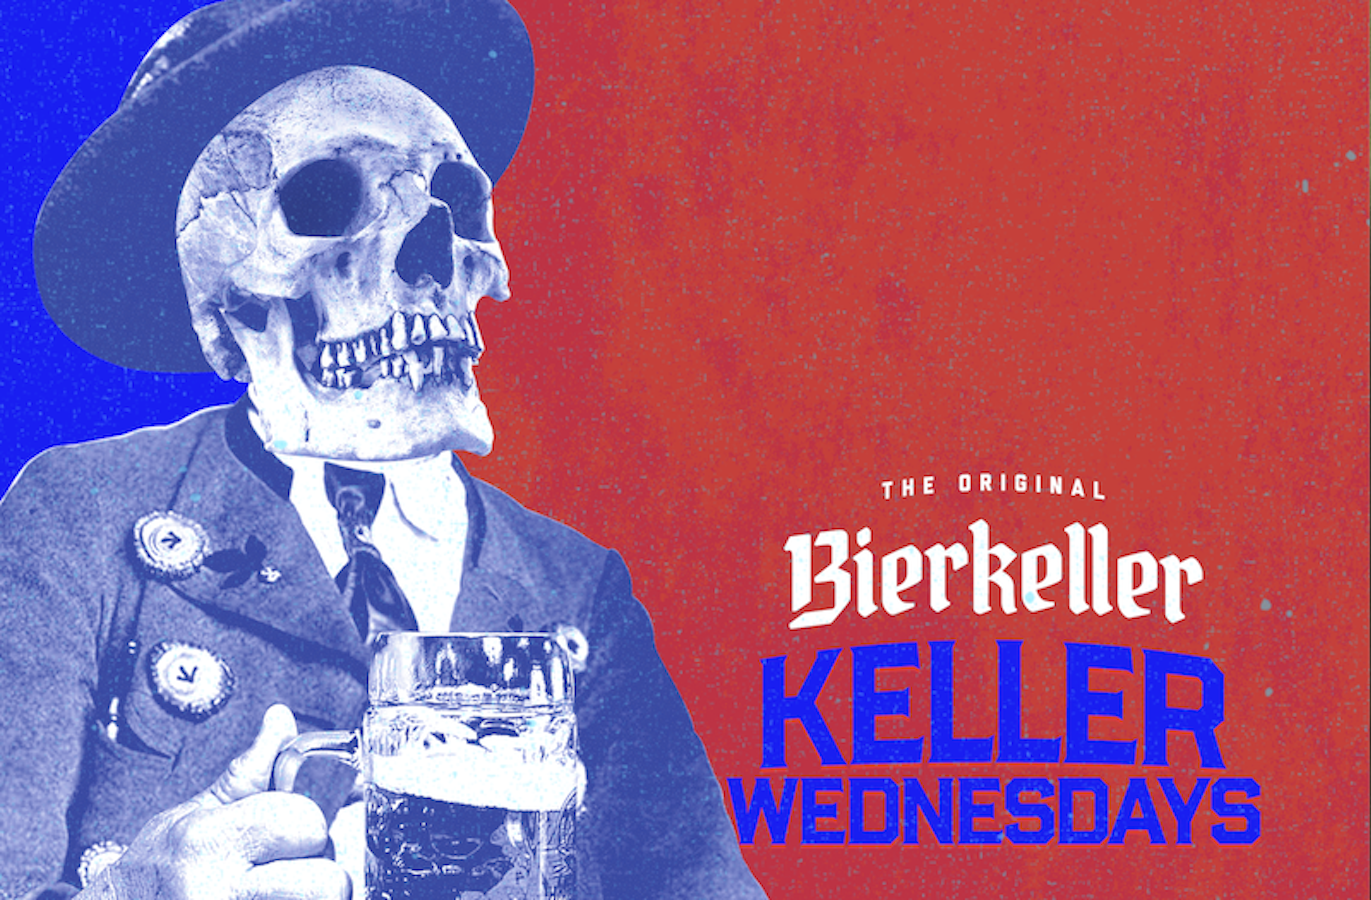 Wednesday – PreKeller